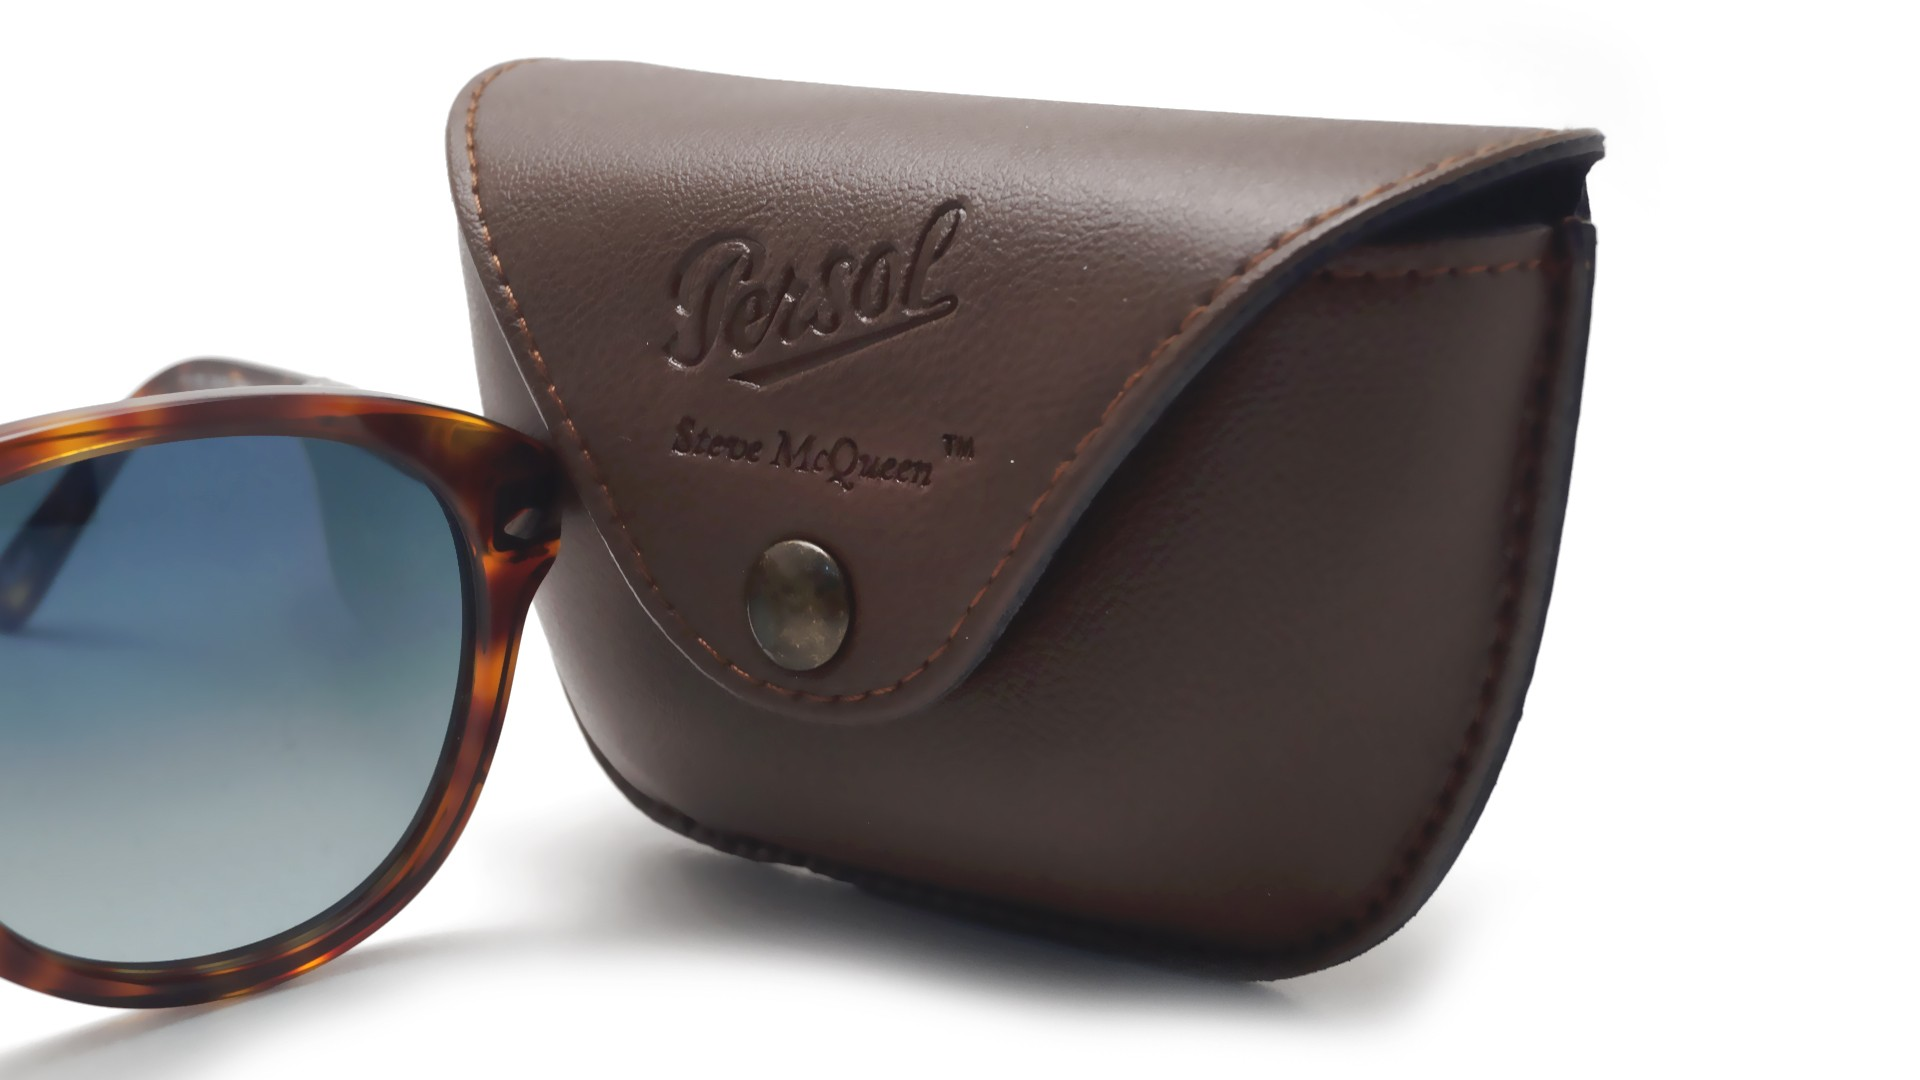 8eb645609526d4 Persol Steve Mcqueen Edition Foldable Sunglasses   Persol steve mcqueen  tortoise po0714sm 24 s3 52 21